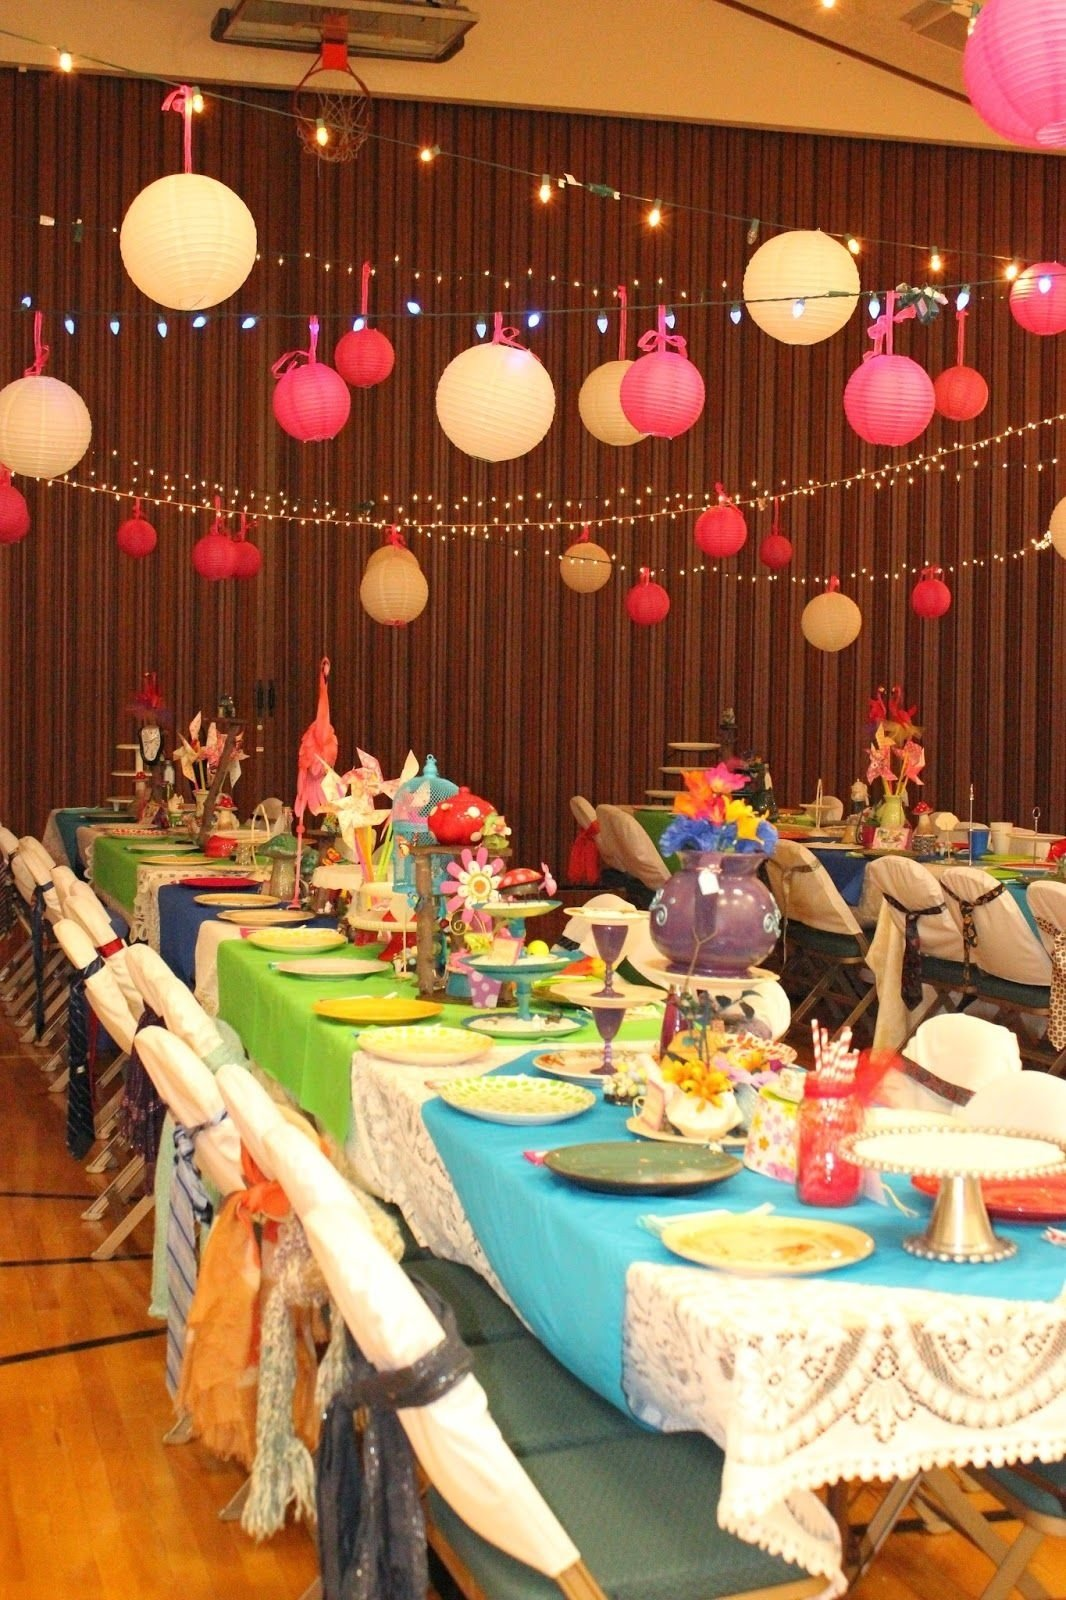 10 Cute Relief Society Birthday Party Ideas isabelle thornton le chateau des fleurs relief society birthday 1 2021